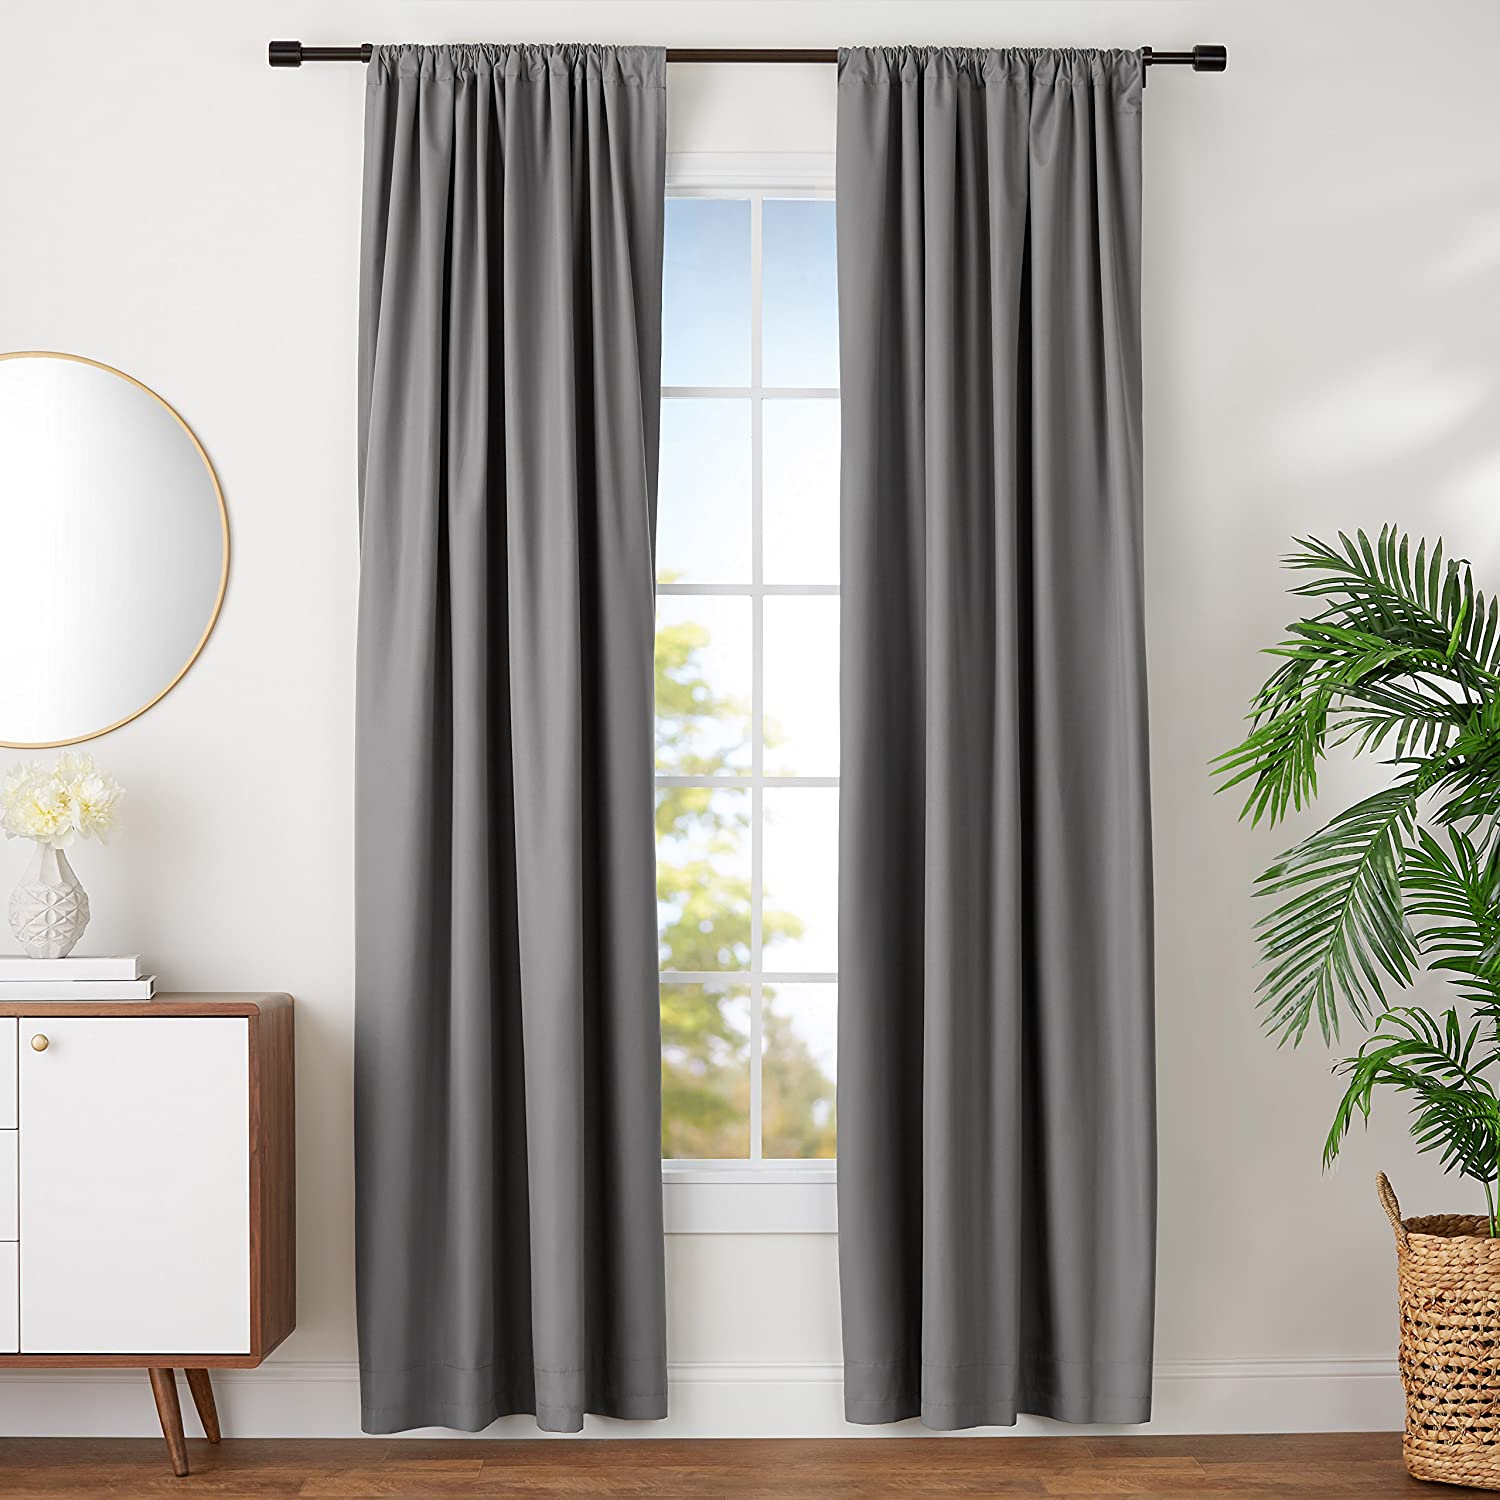 "AmazonBasics Room Darkening Blackout Window Curtains with Tie Backs Set, 42"" x 96"", Dark Grey"